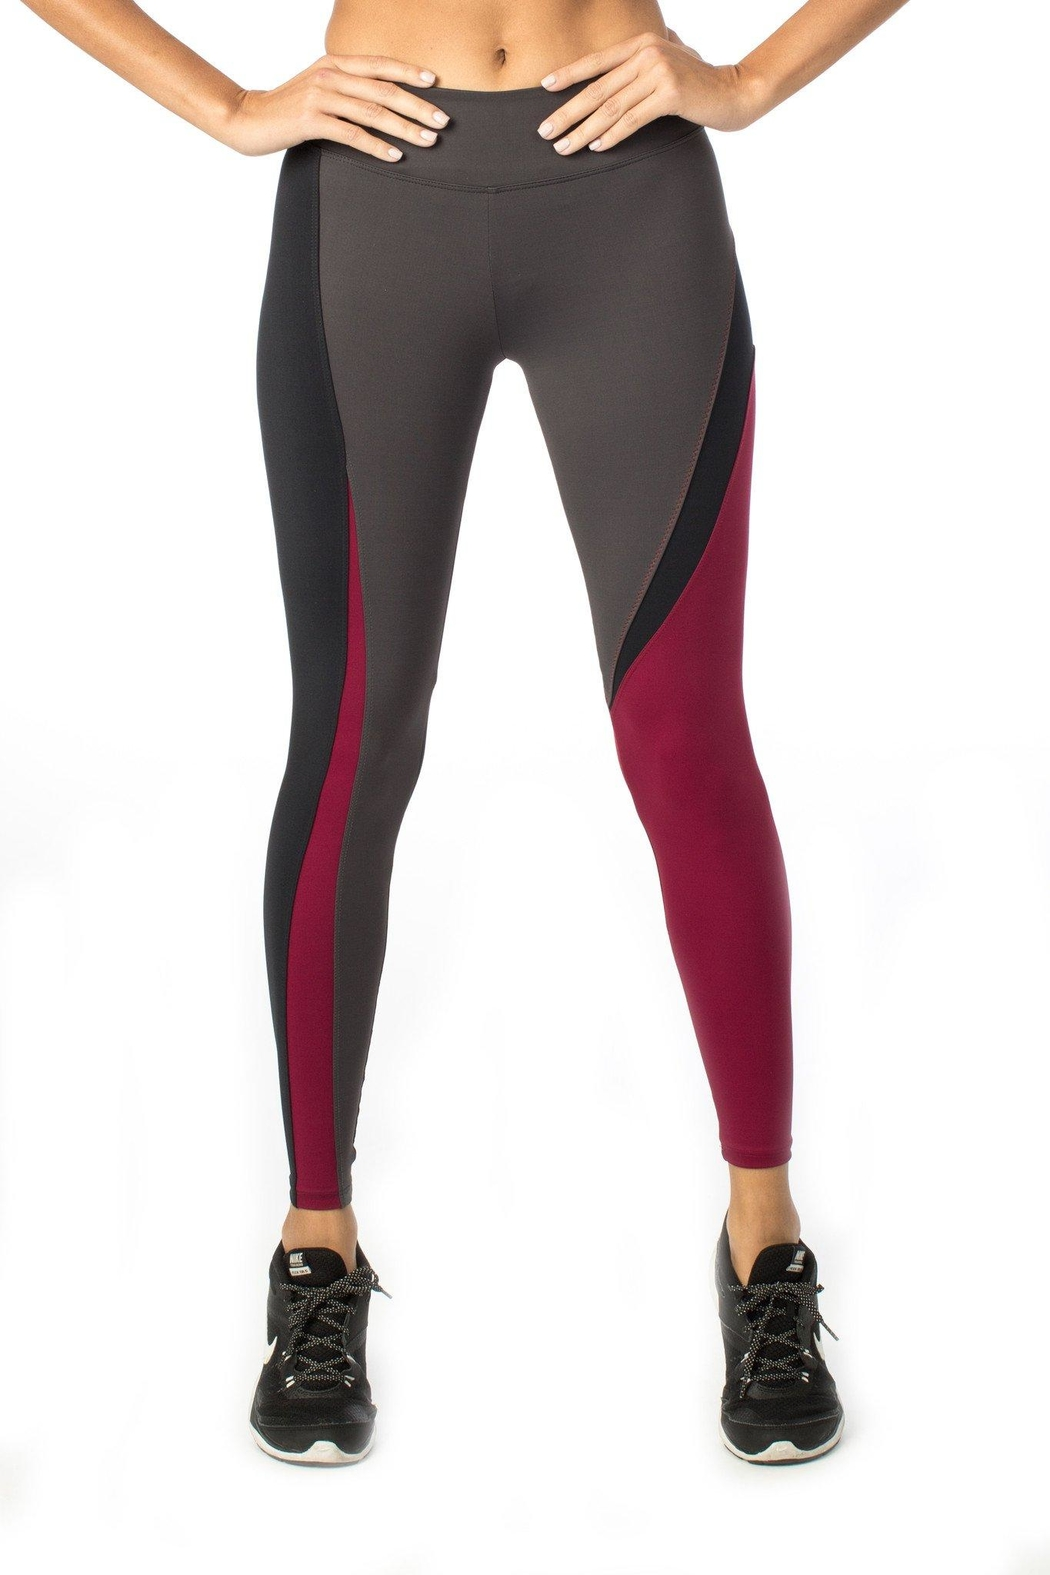 925 FIT Collateral Damage Legging - Main Image